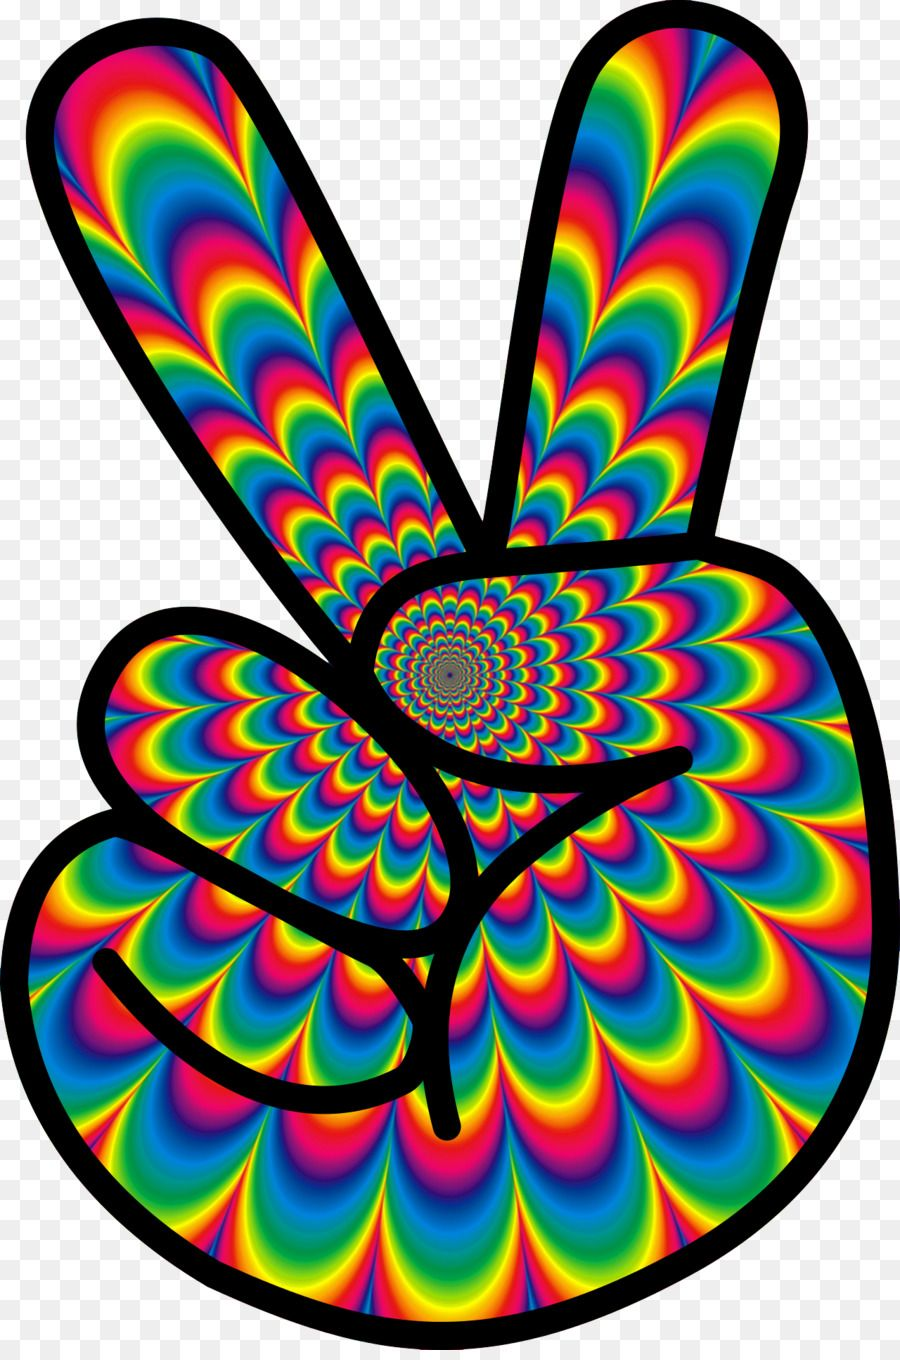 1960s Hippie Flower power Clip art.